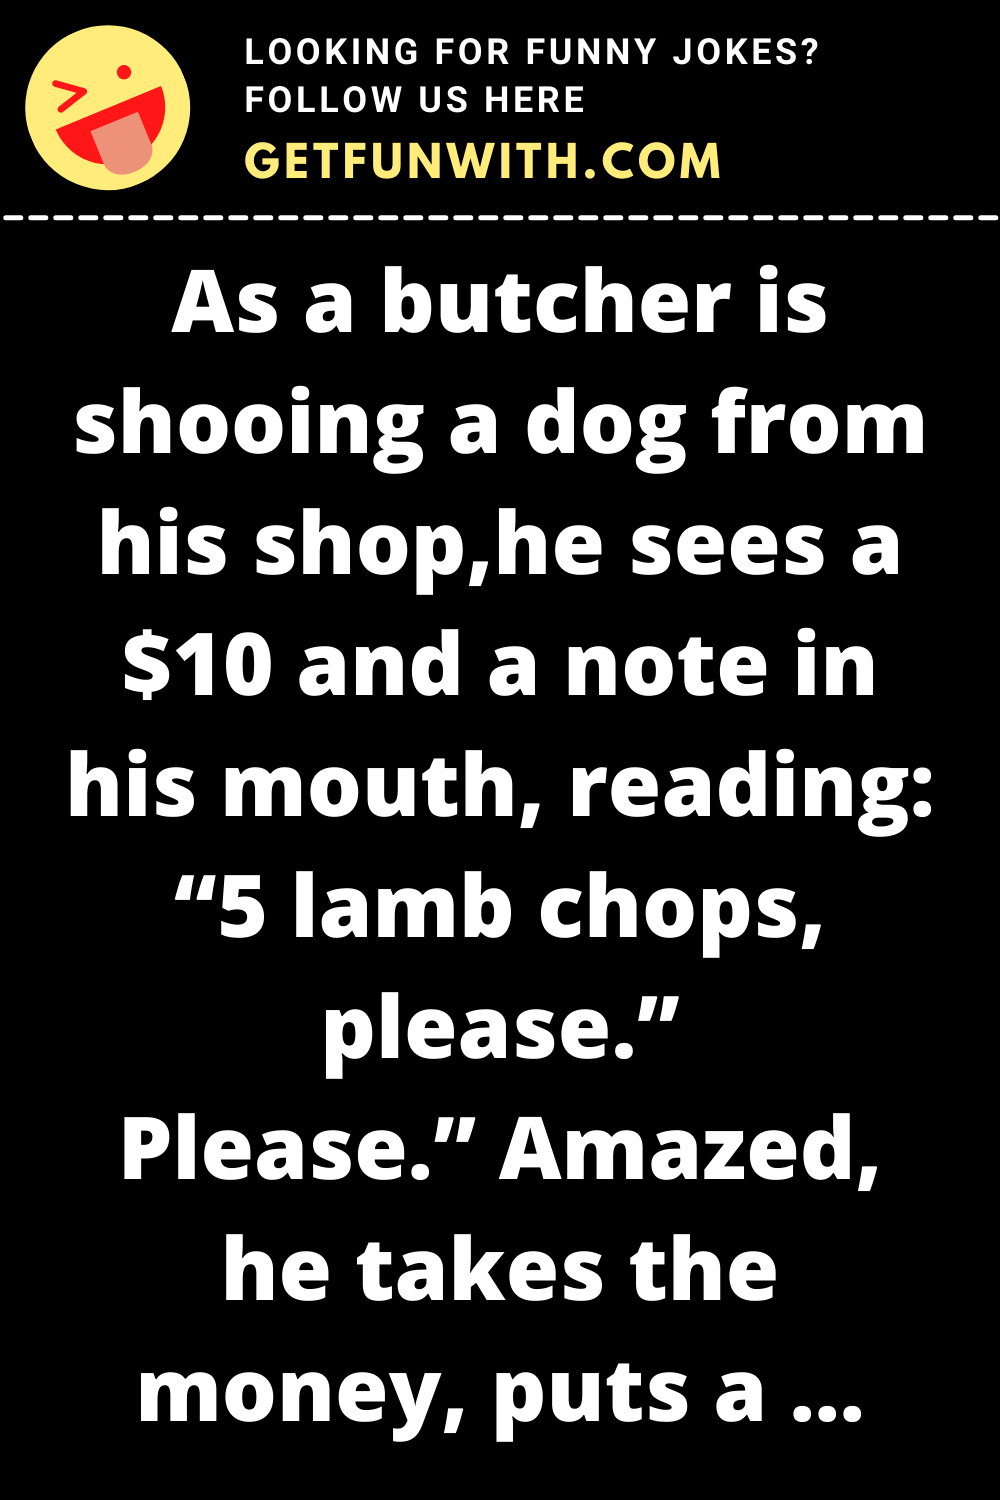 """As a butcher is shooing a dog from his shop, he sees a $10 and a note in his mouth, reading: """"5 lamb chops, please."""""""